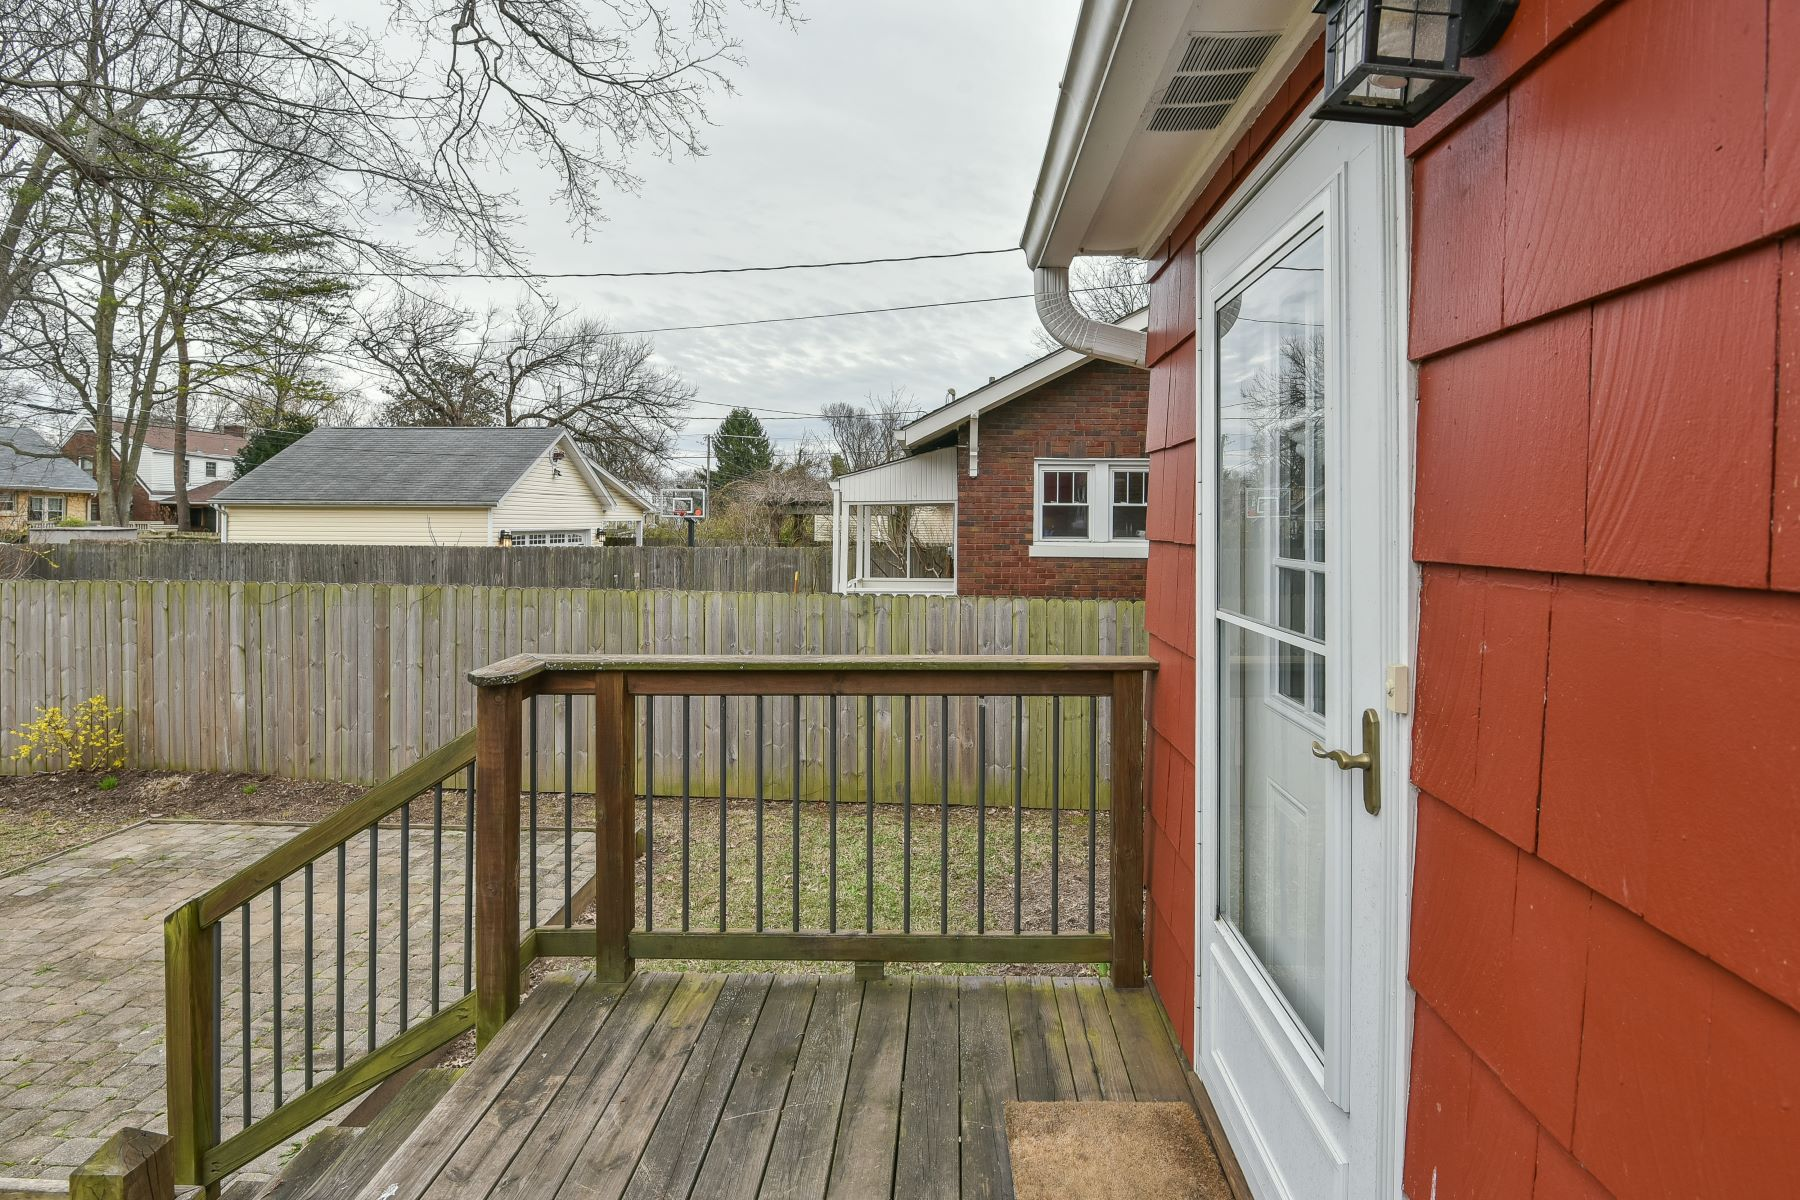 Additional photo for property listing at 417 Iola Road 417 Iola Road Louisville, Kentucky 40207 United States